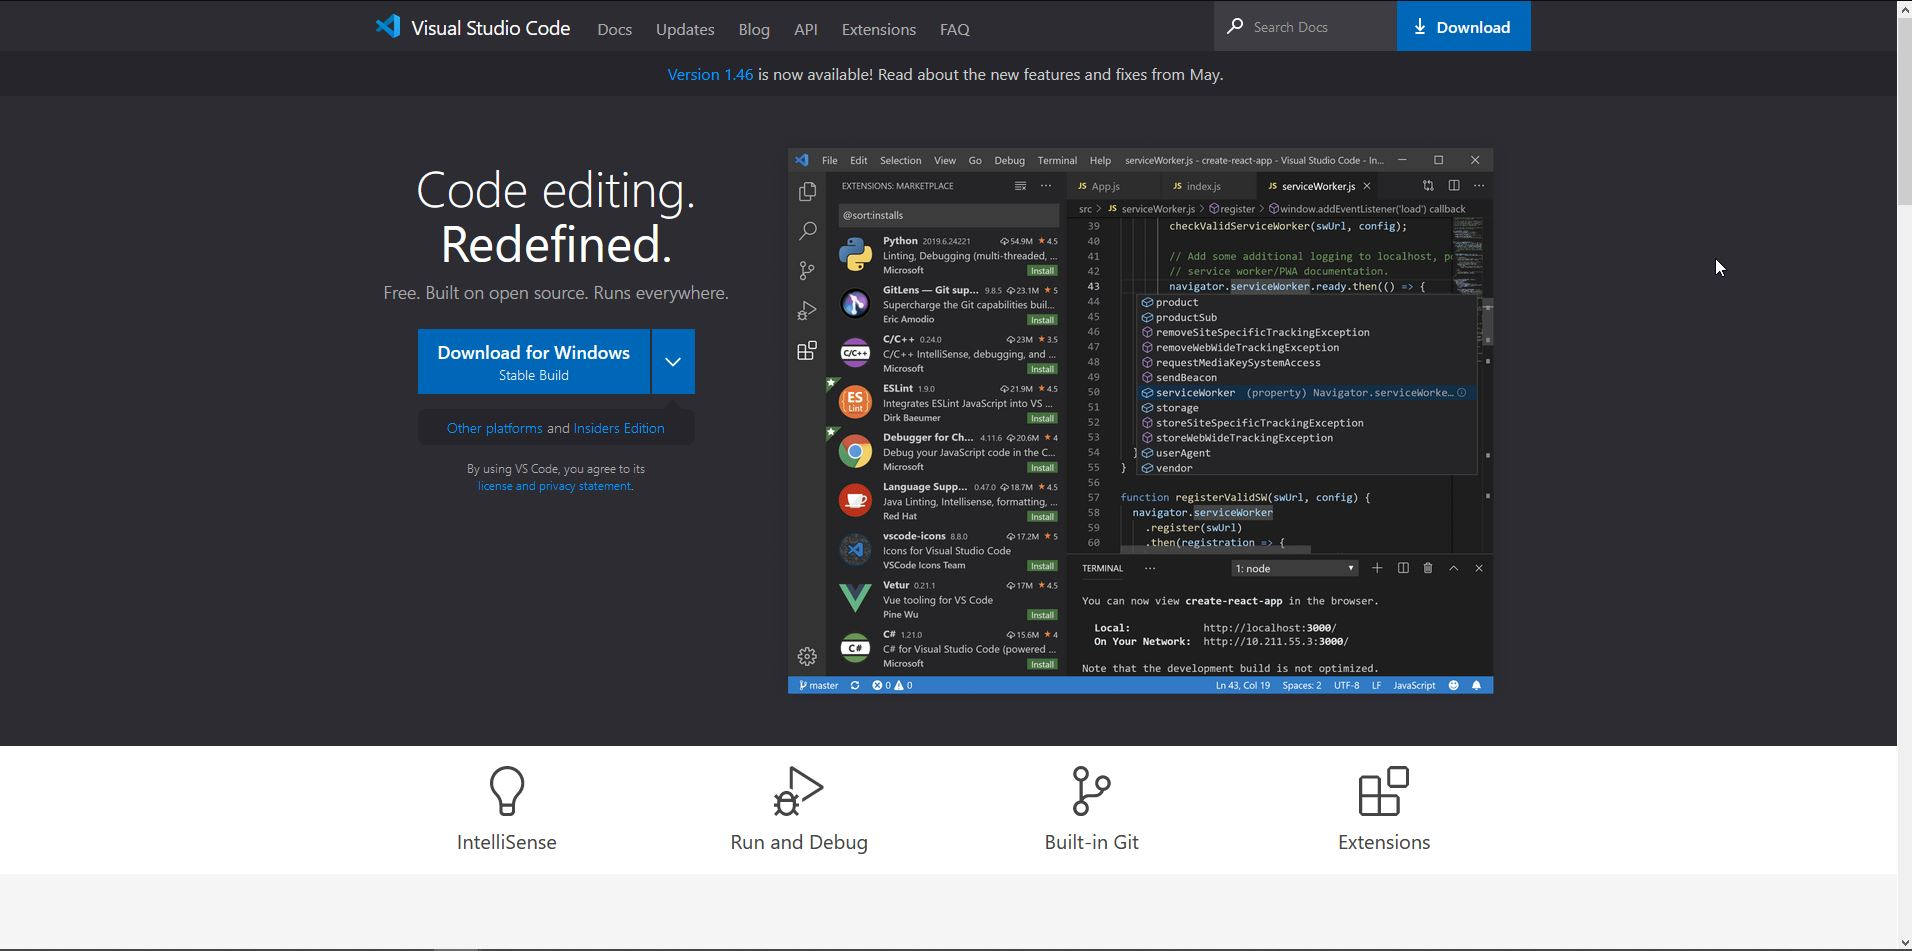 Visual Studio Code download von der Website.